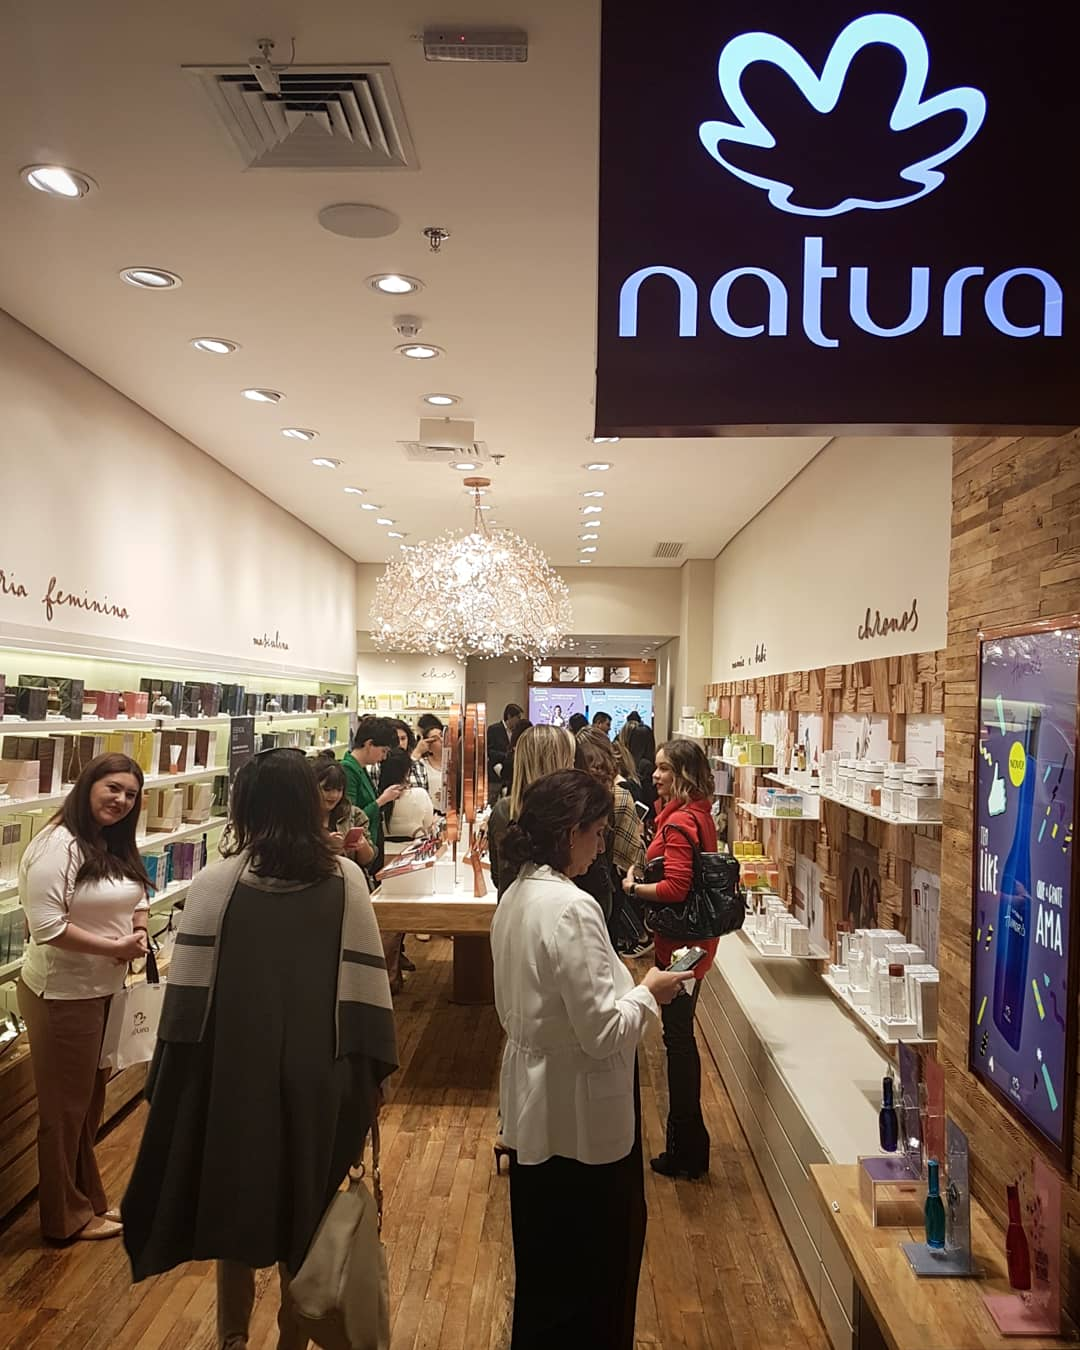 266fb59416 NATURA INAUGURA LOJA NO SHOPPING MUELLER